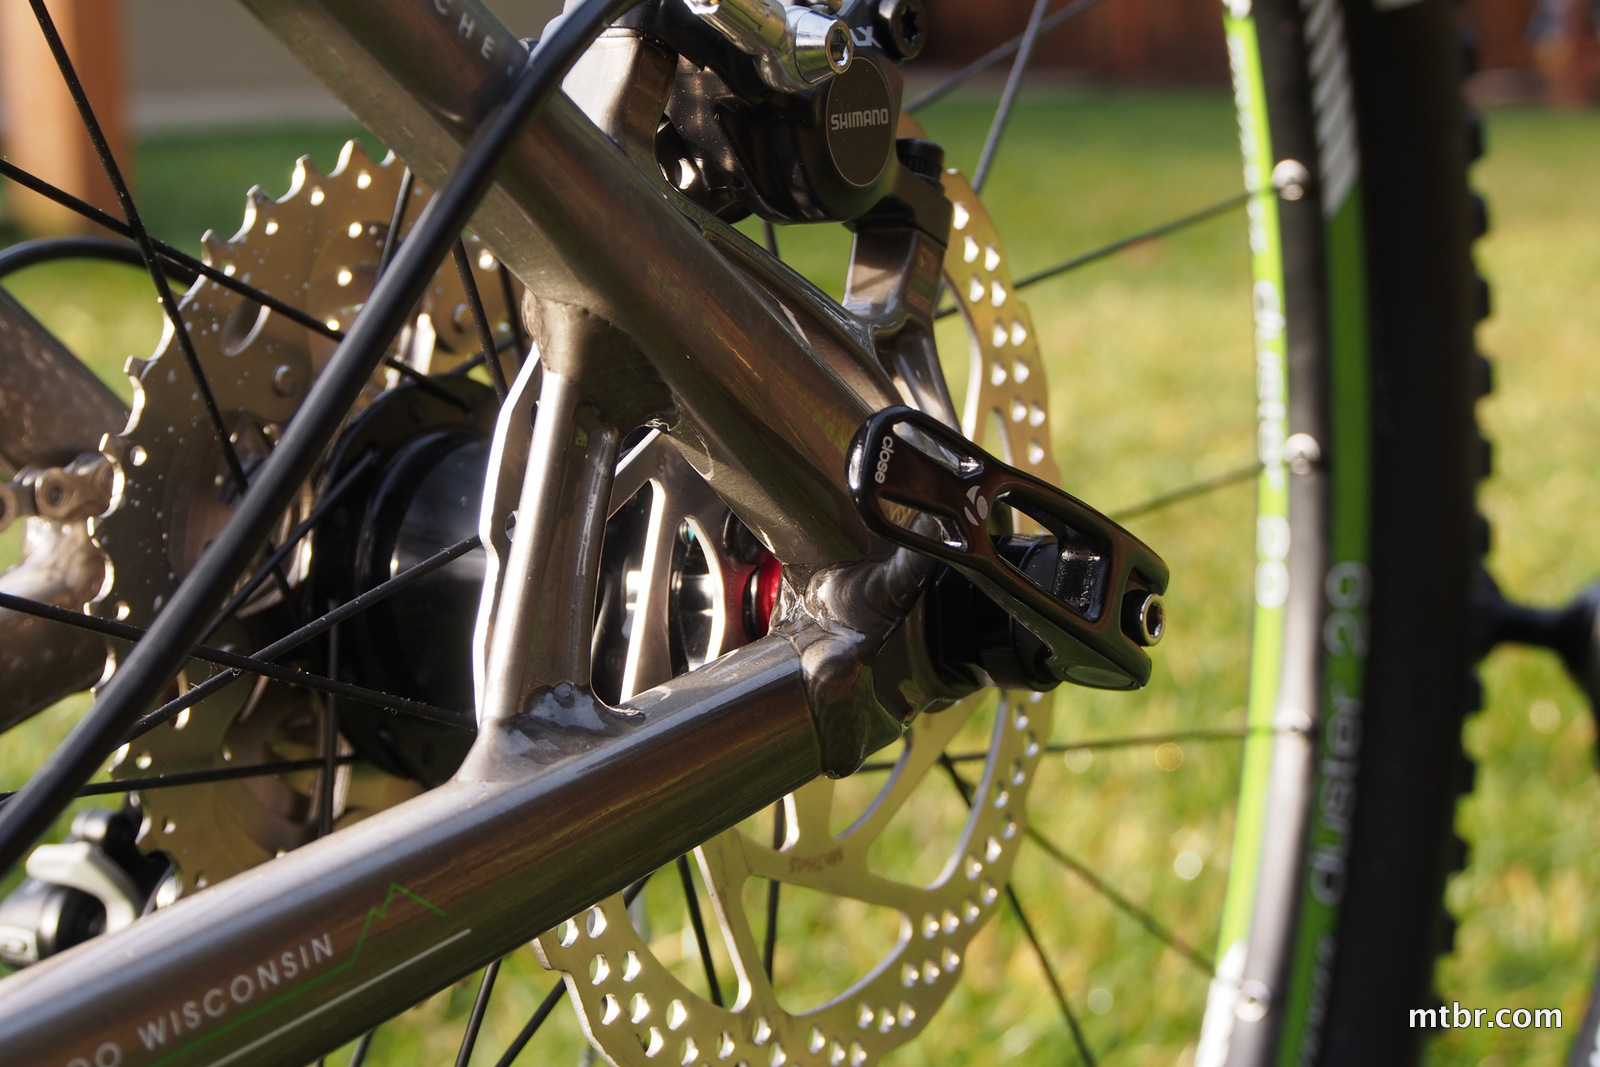 Trek Stache 8 Post Mount Brakes